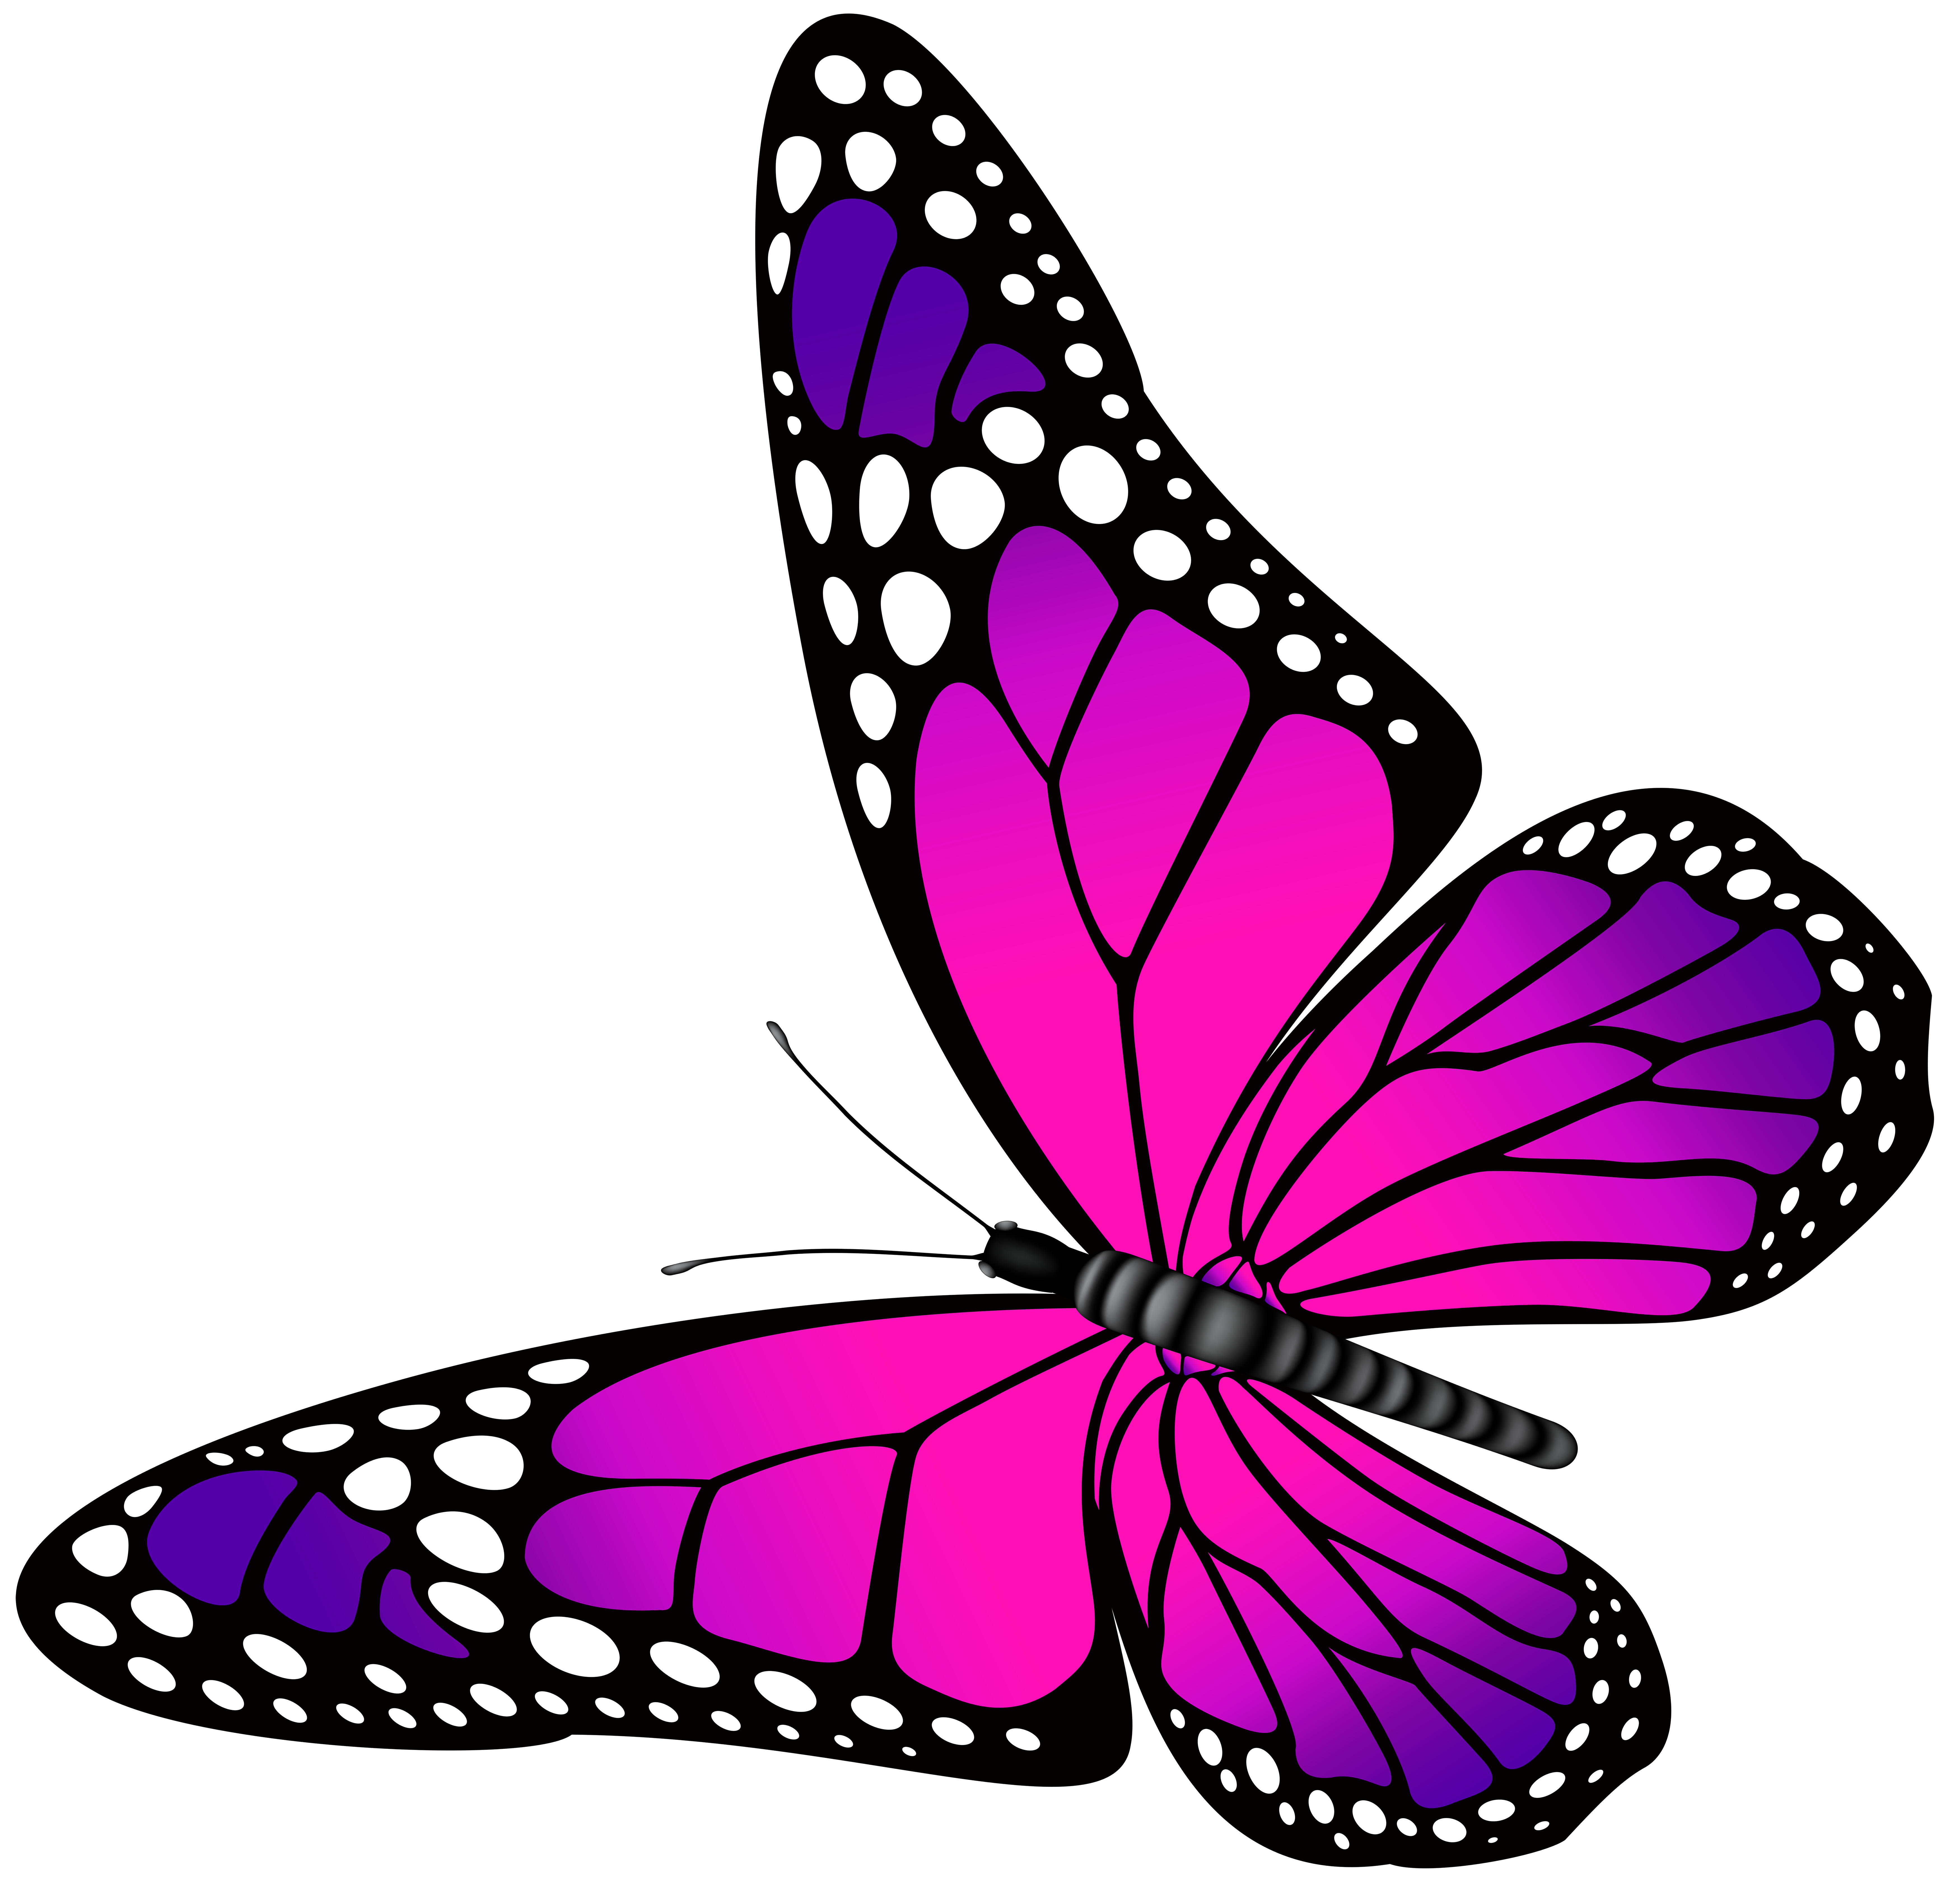 free butterfly clipart for kids at getdrawings com free for rh getdrawings com